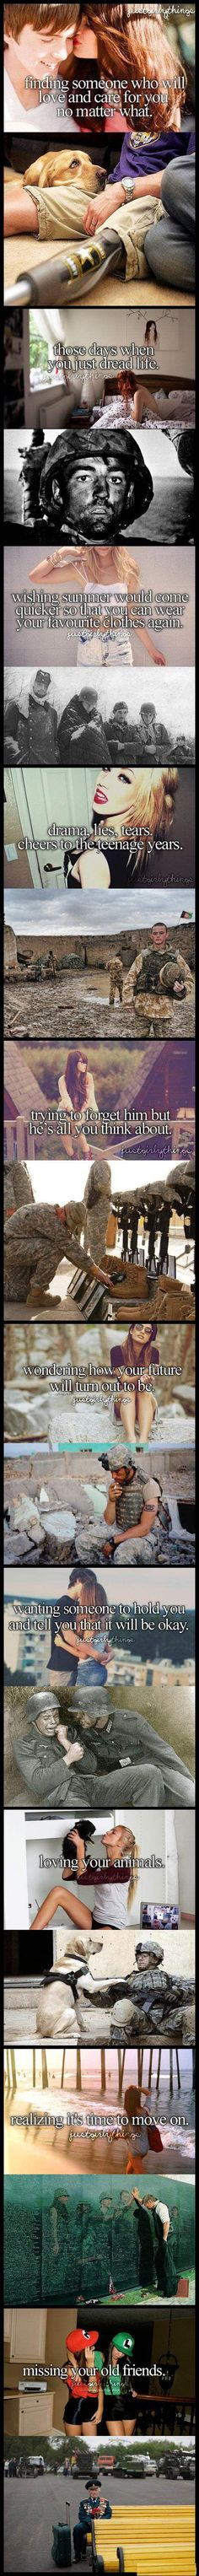 A SOLDIERS MOMENTS. I hate those stupid teenager posts. Those teenagers don't know what those soldiers go though and if anyone has room to speak about hardship it's every. Single. Soldier. And family member of those soldiers have the room to speak.